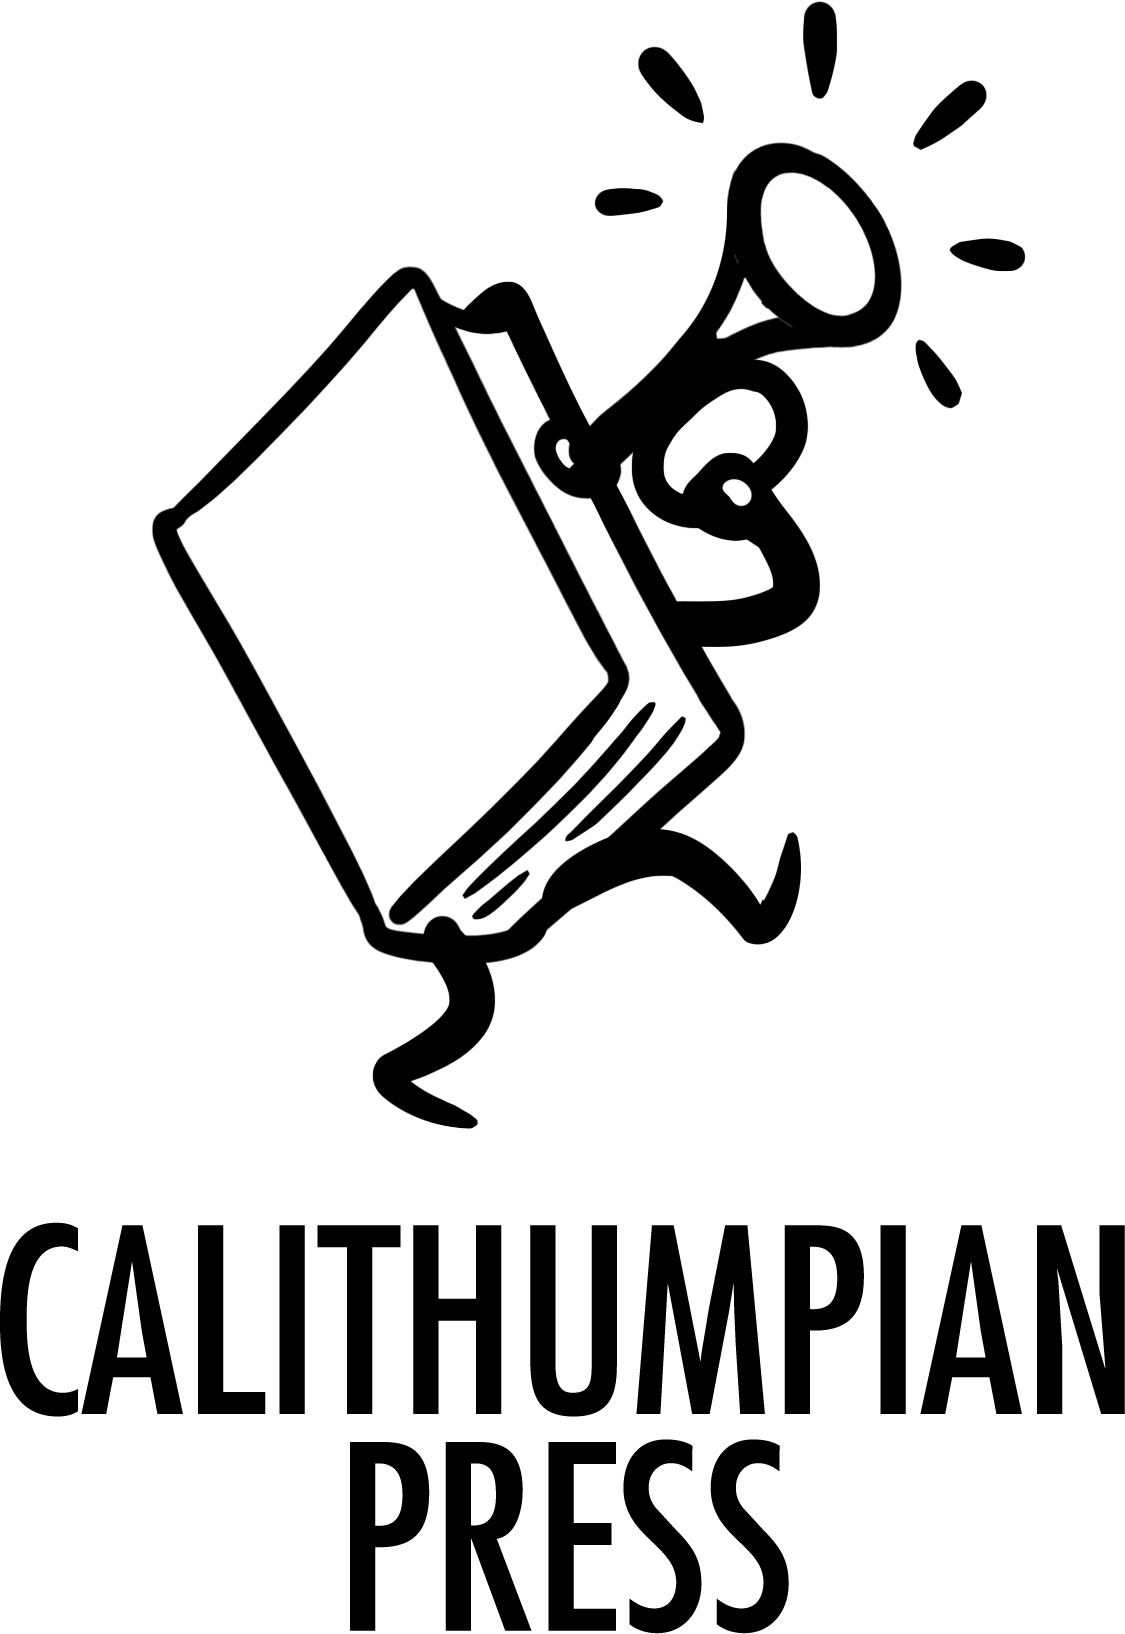 Calithumpian Press